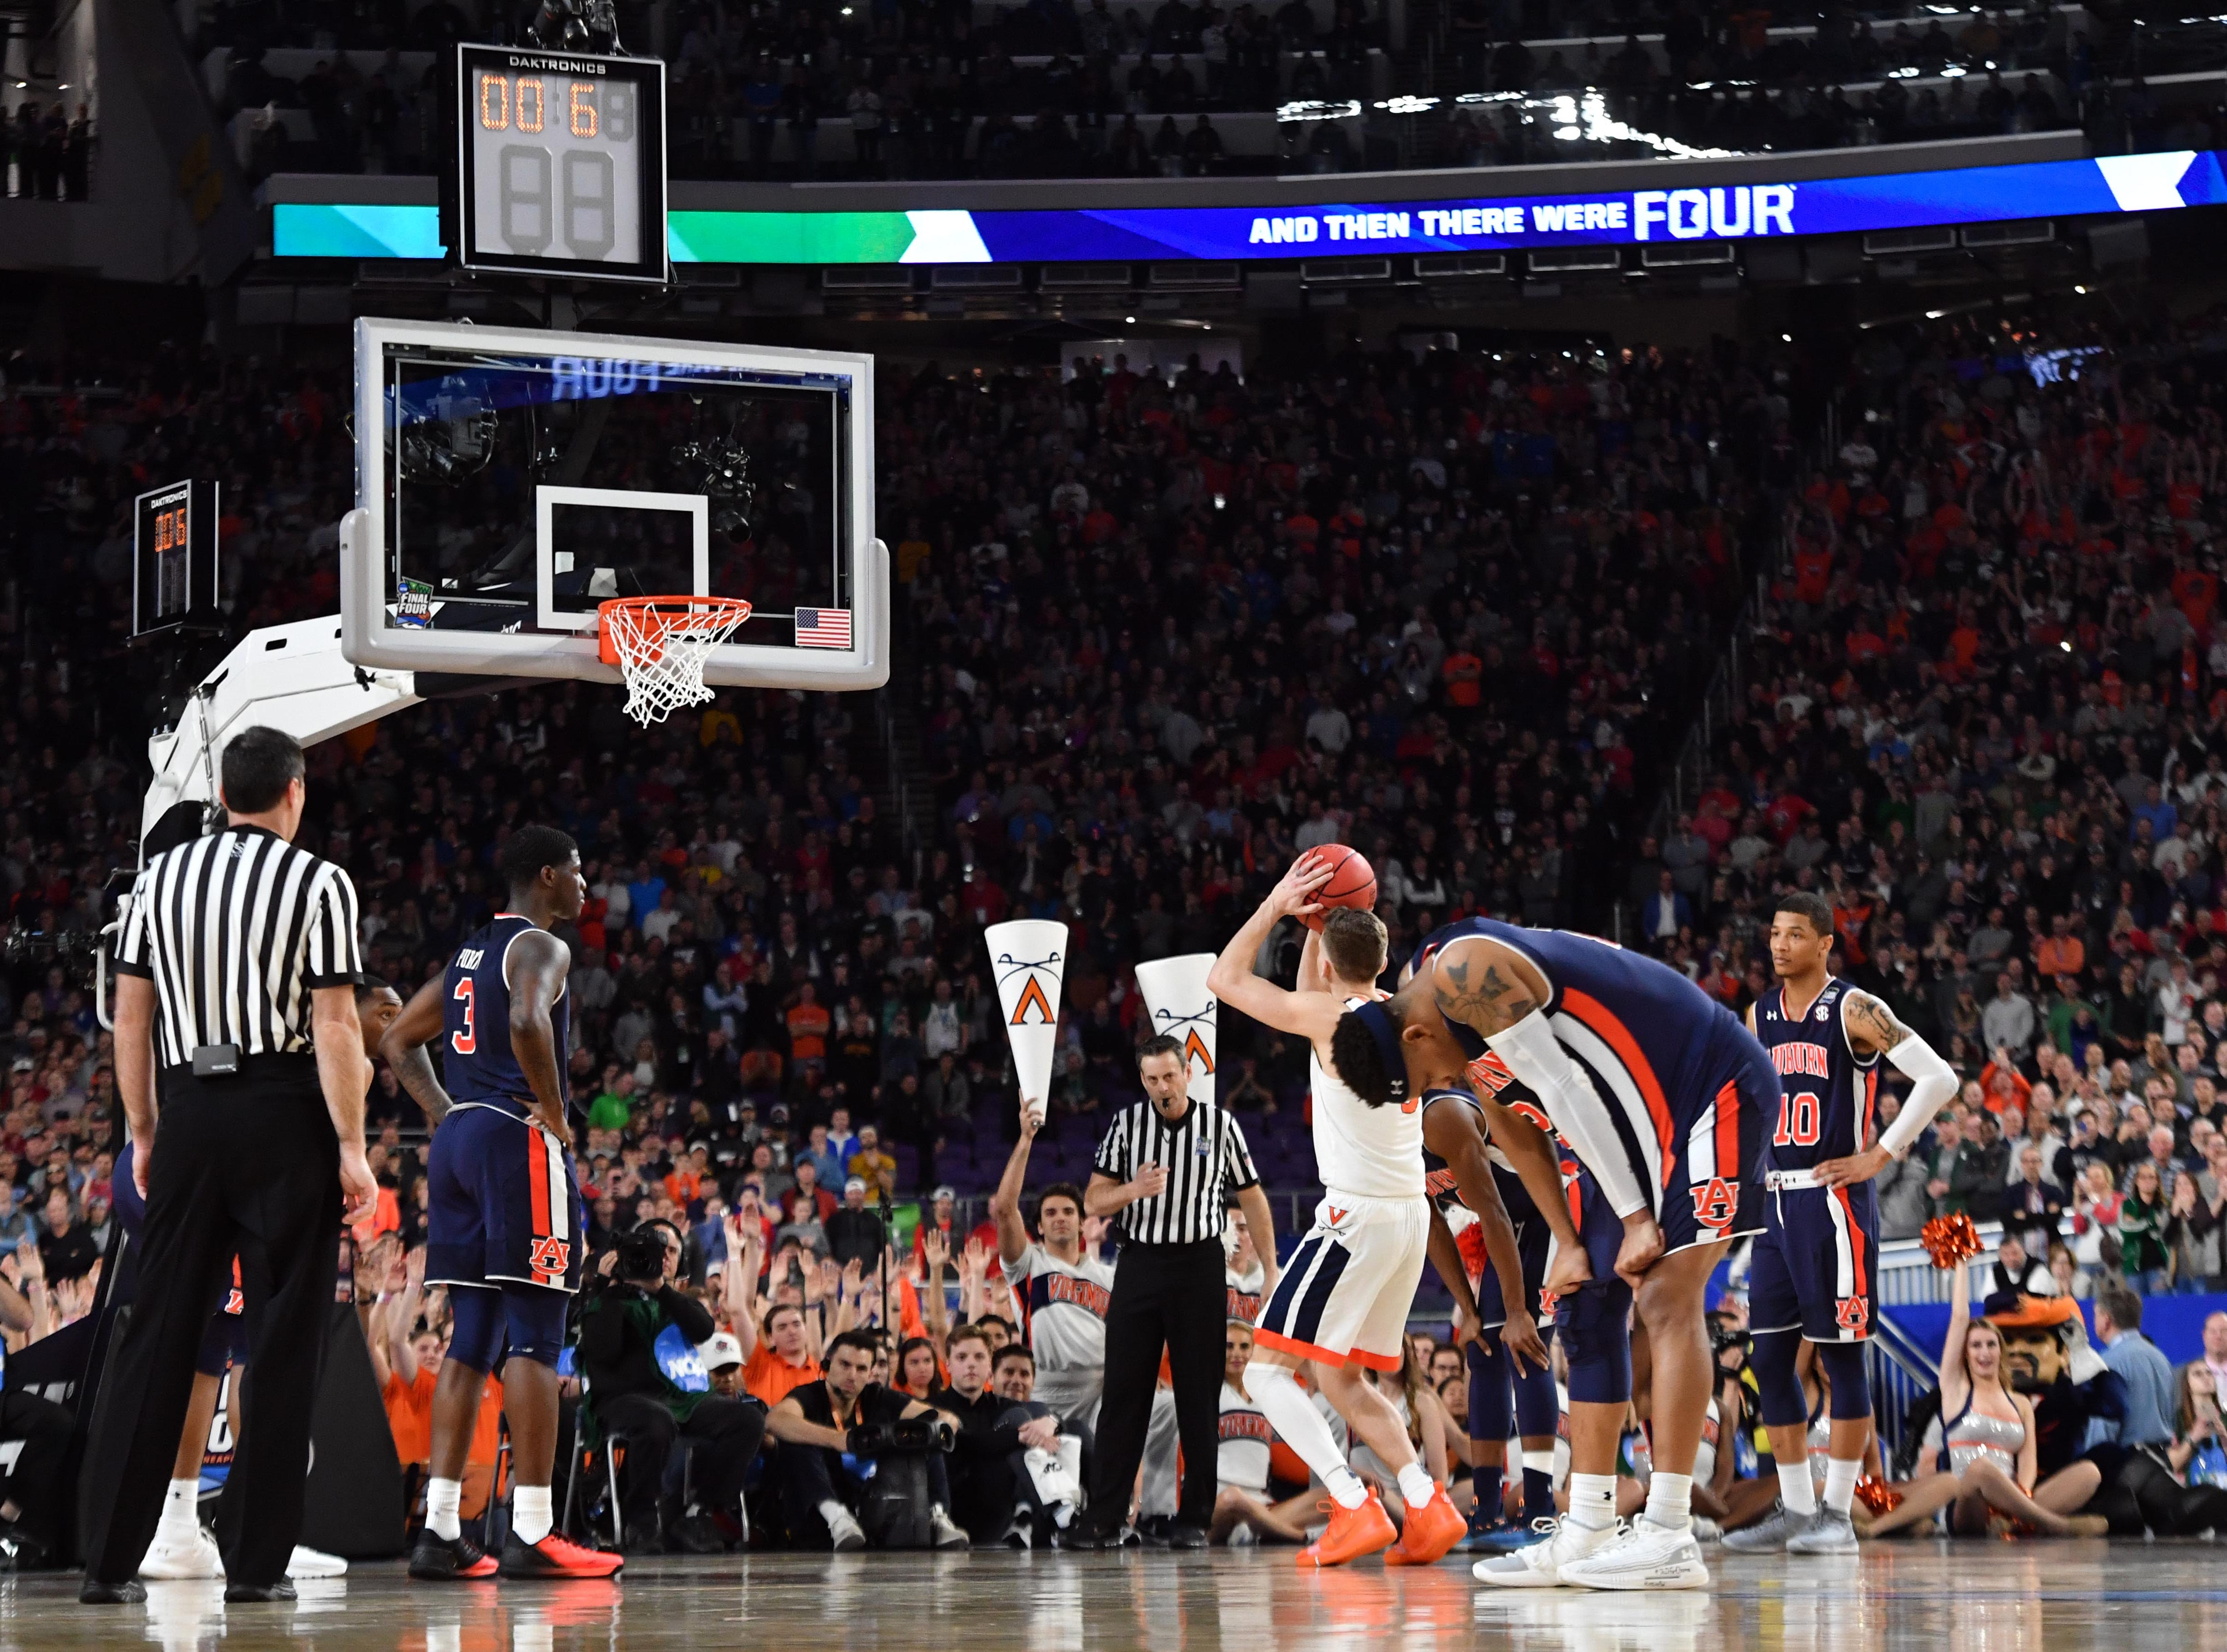 Virginia Cavaliers guard Kyle Guy shoots the game-winning free throws.